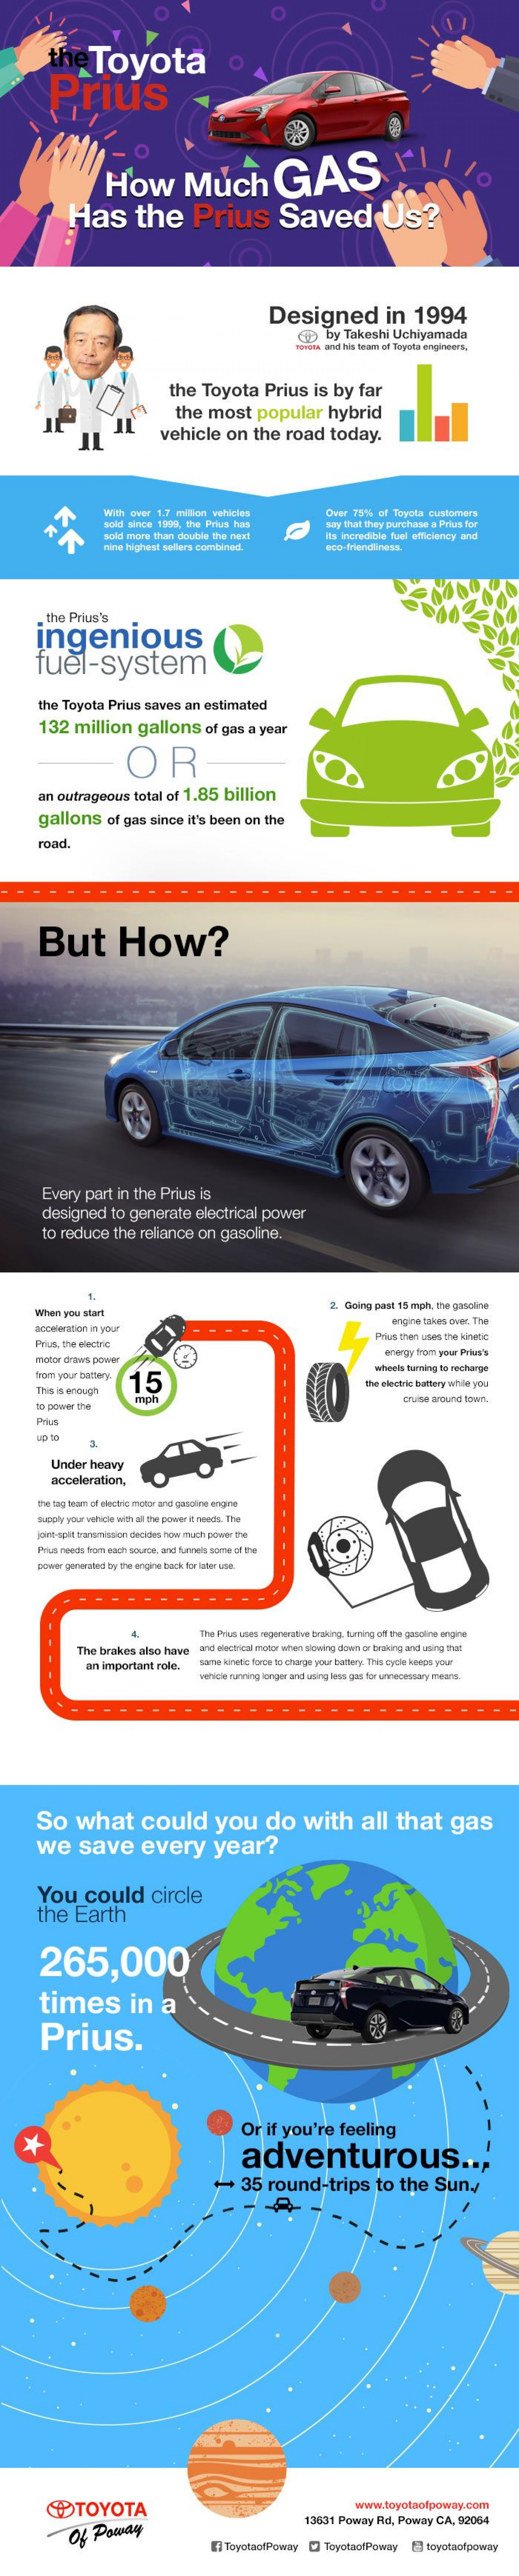 The Toyota Prius: How Much Gas Does It Save? Infographic